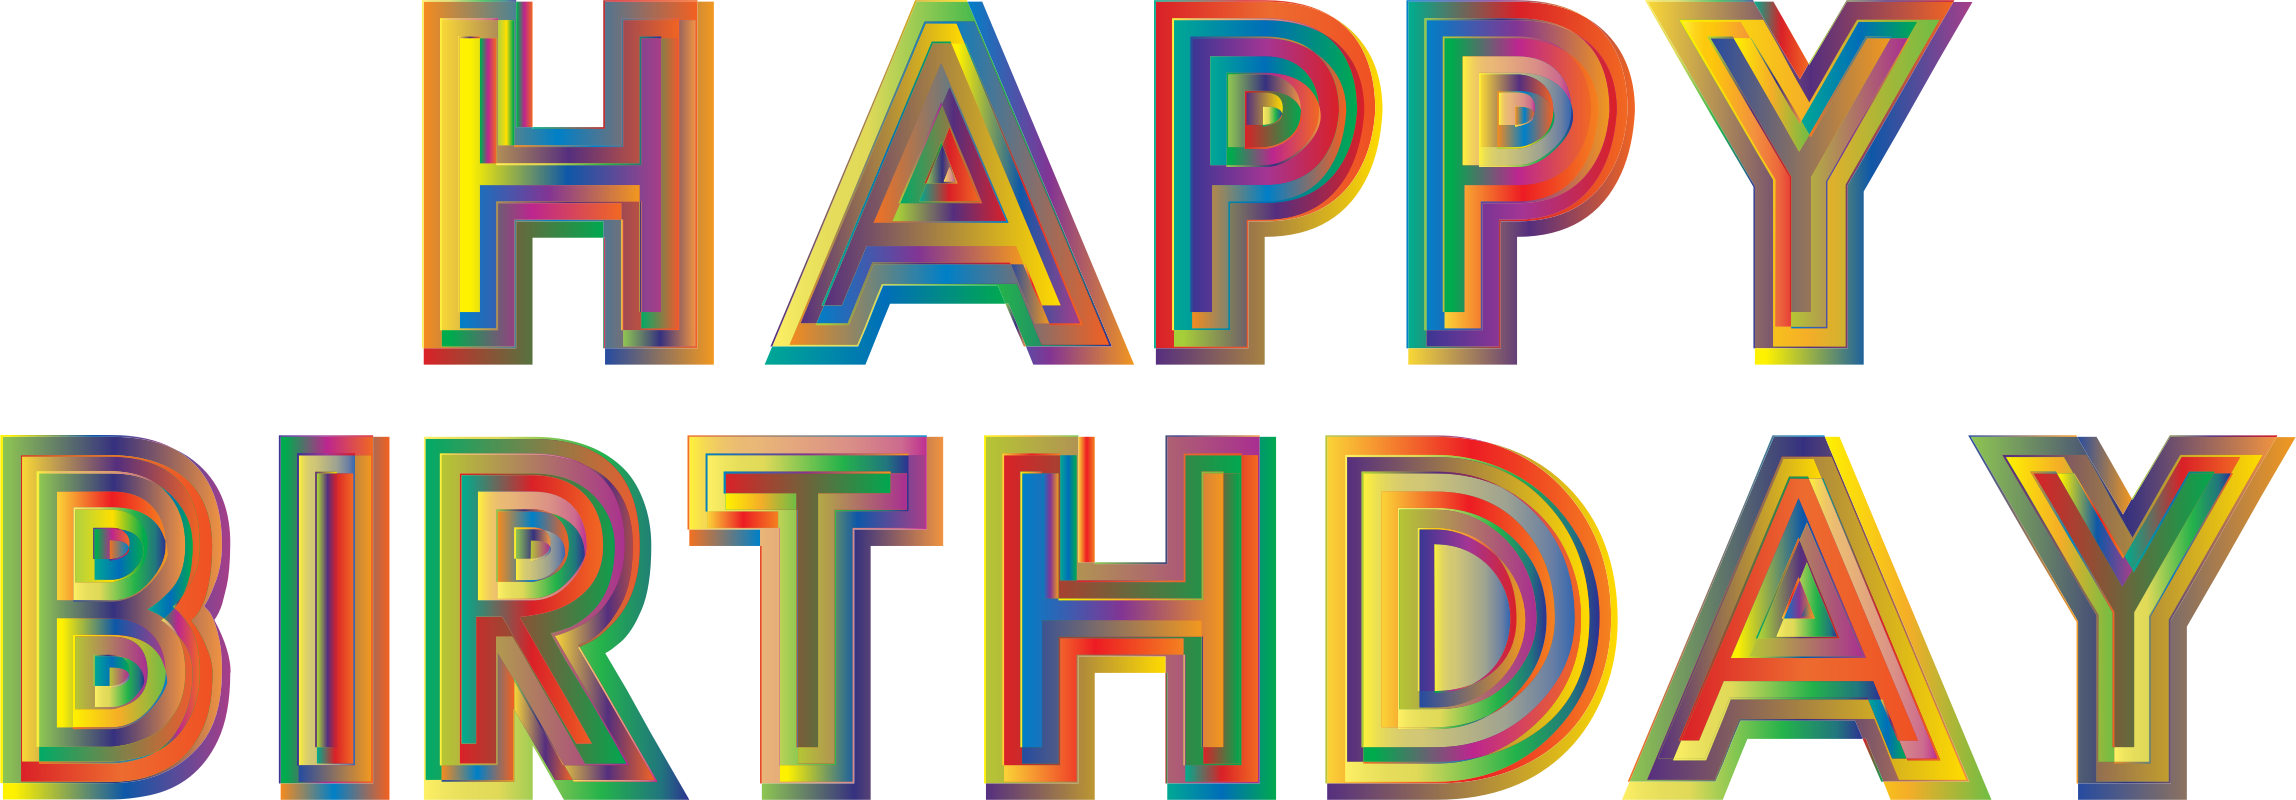 Happy Birthday Typography 3 by GDJ